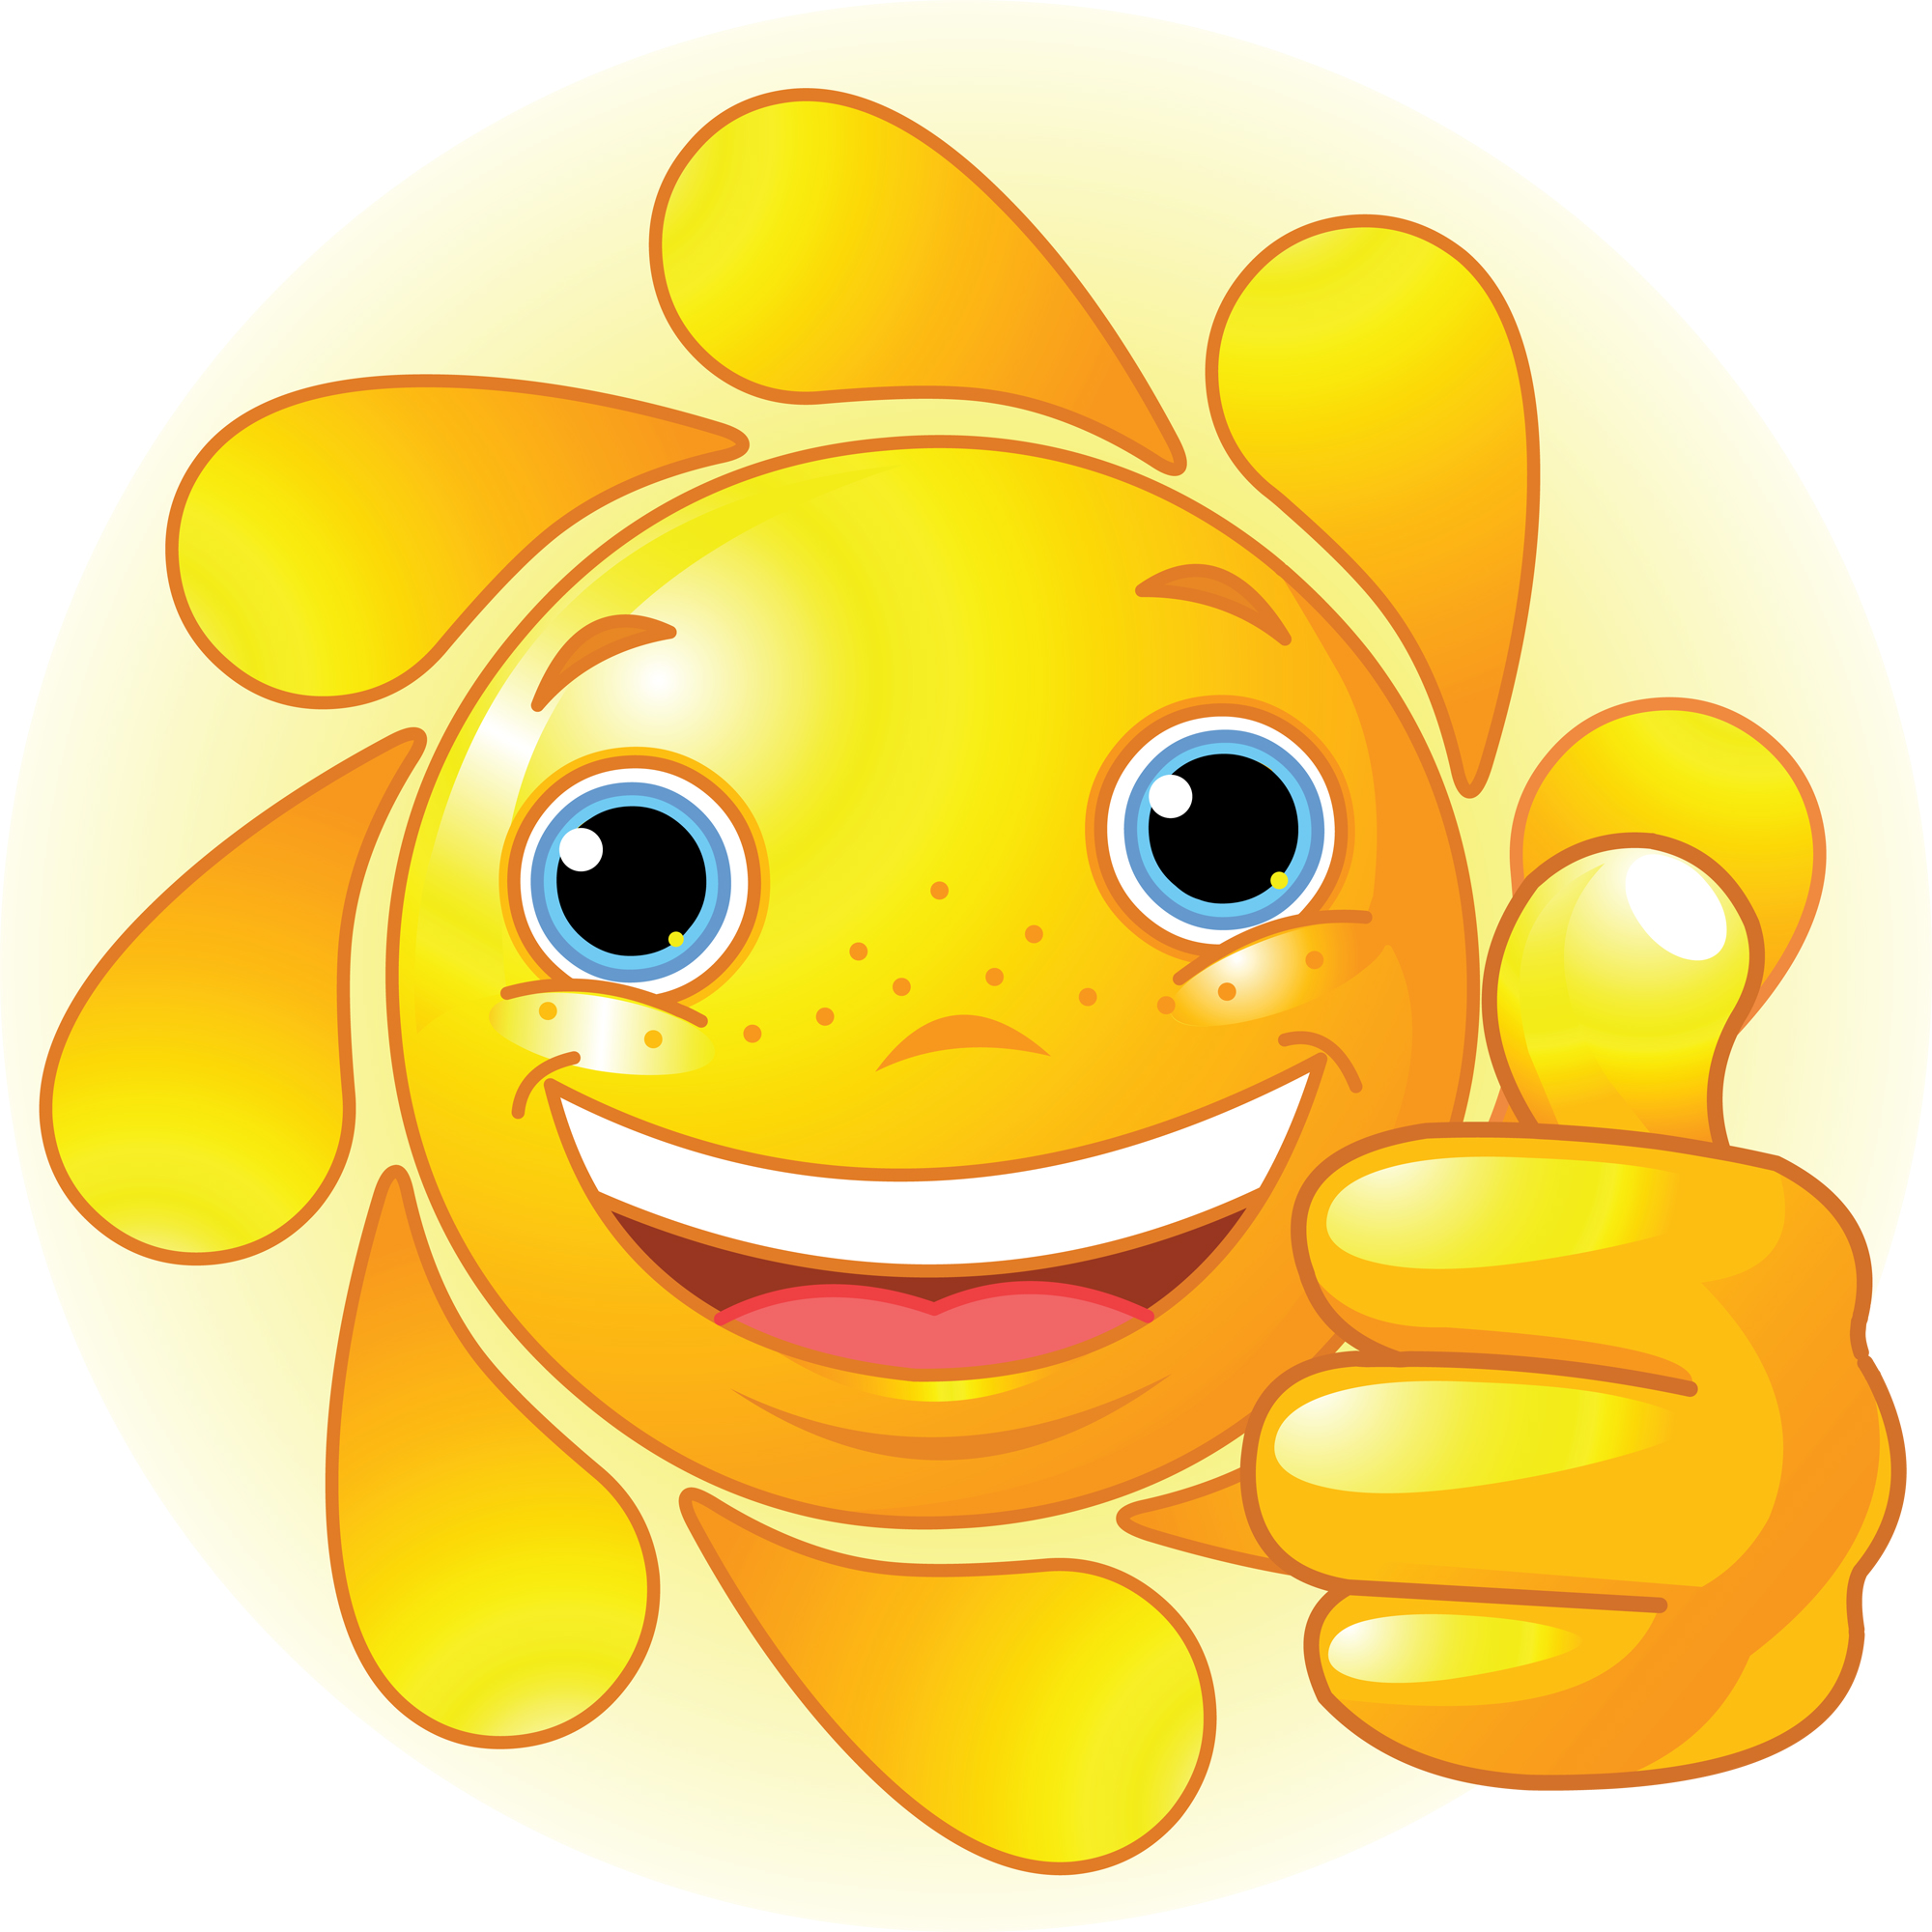 Smiley Sun Clip Art at Clker.com vector clip art online, royalty ...